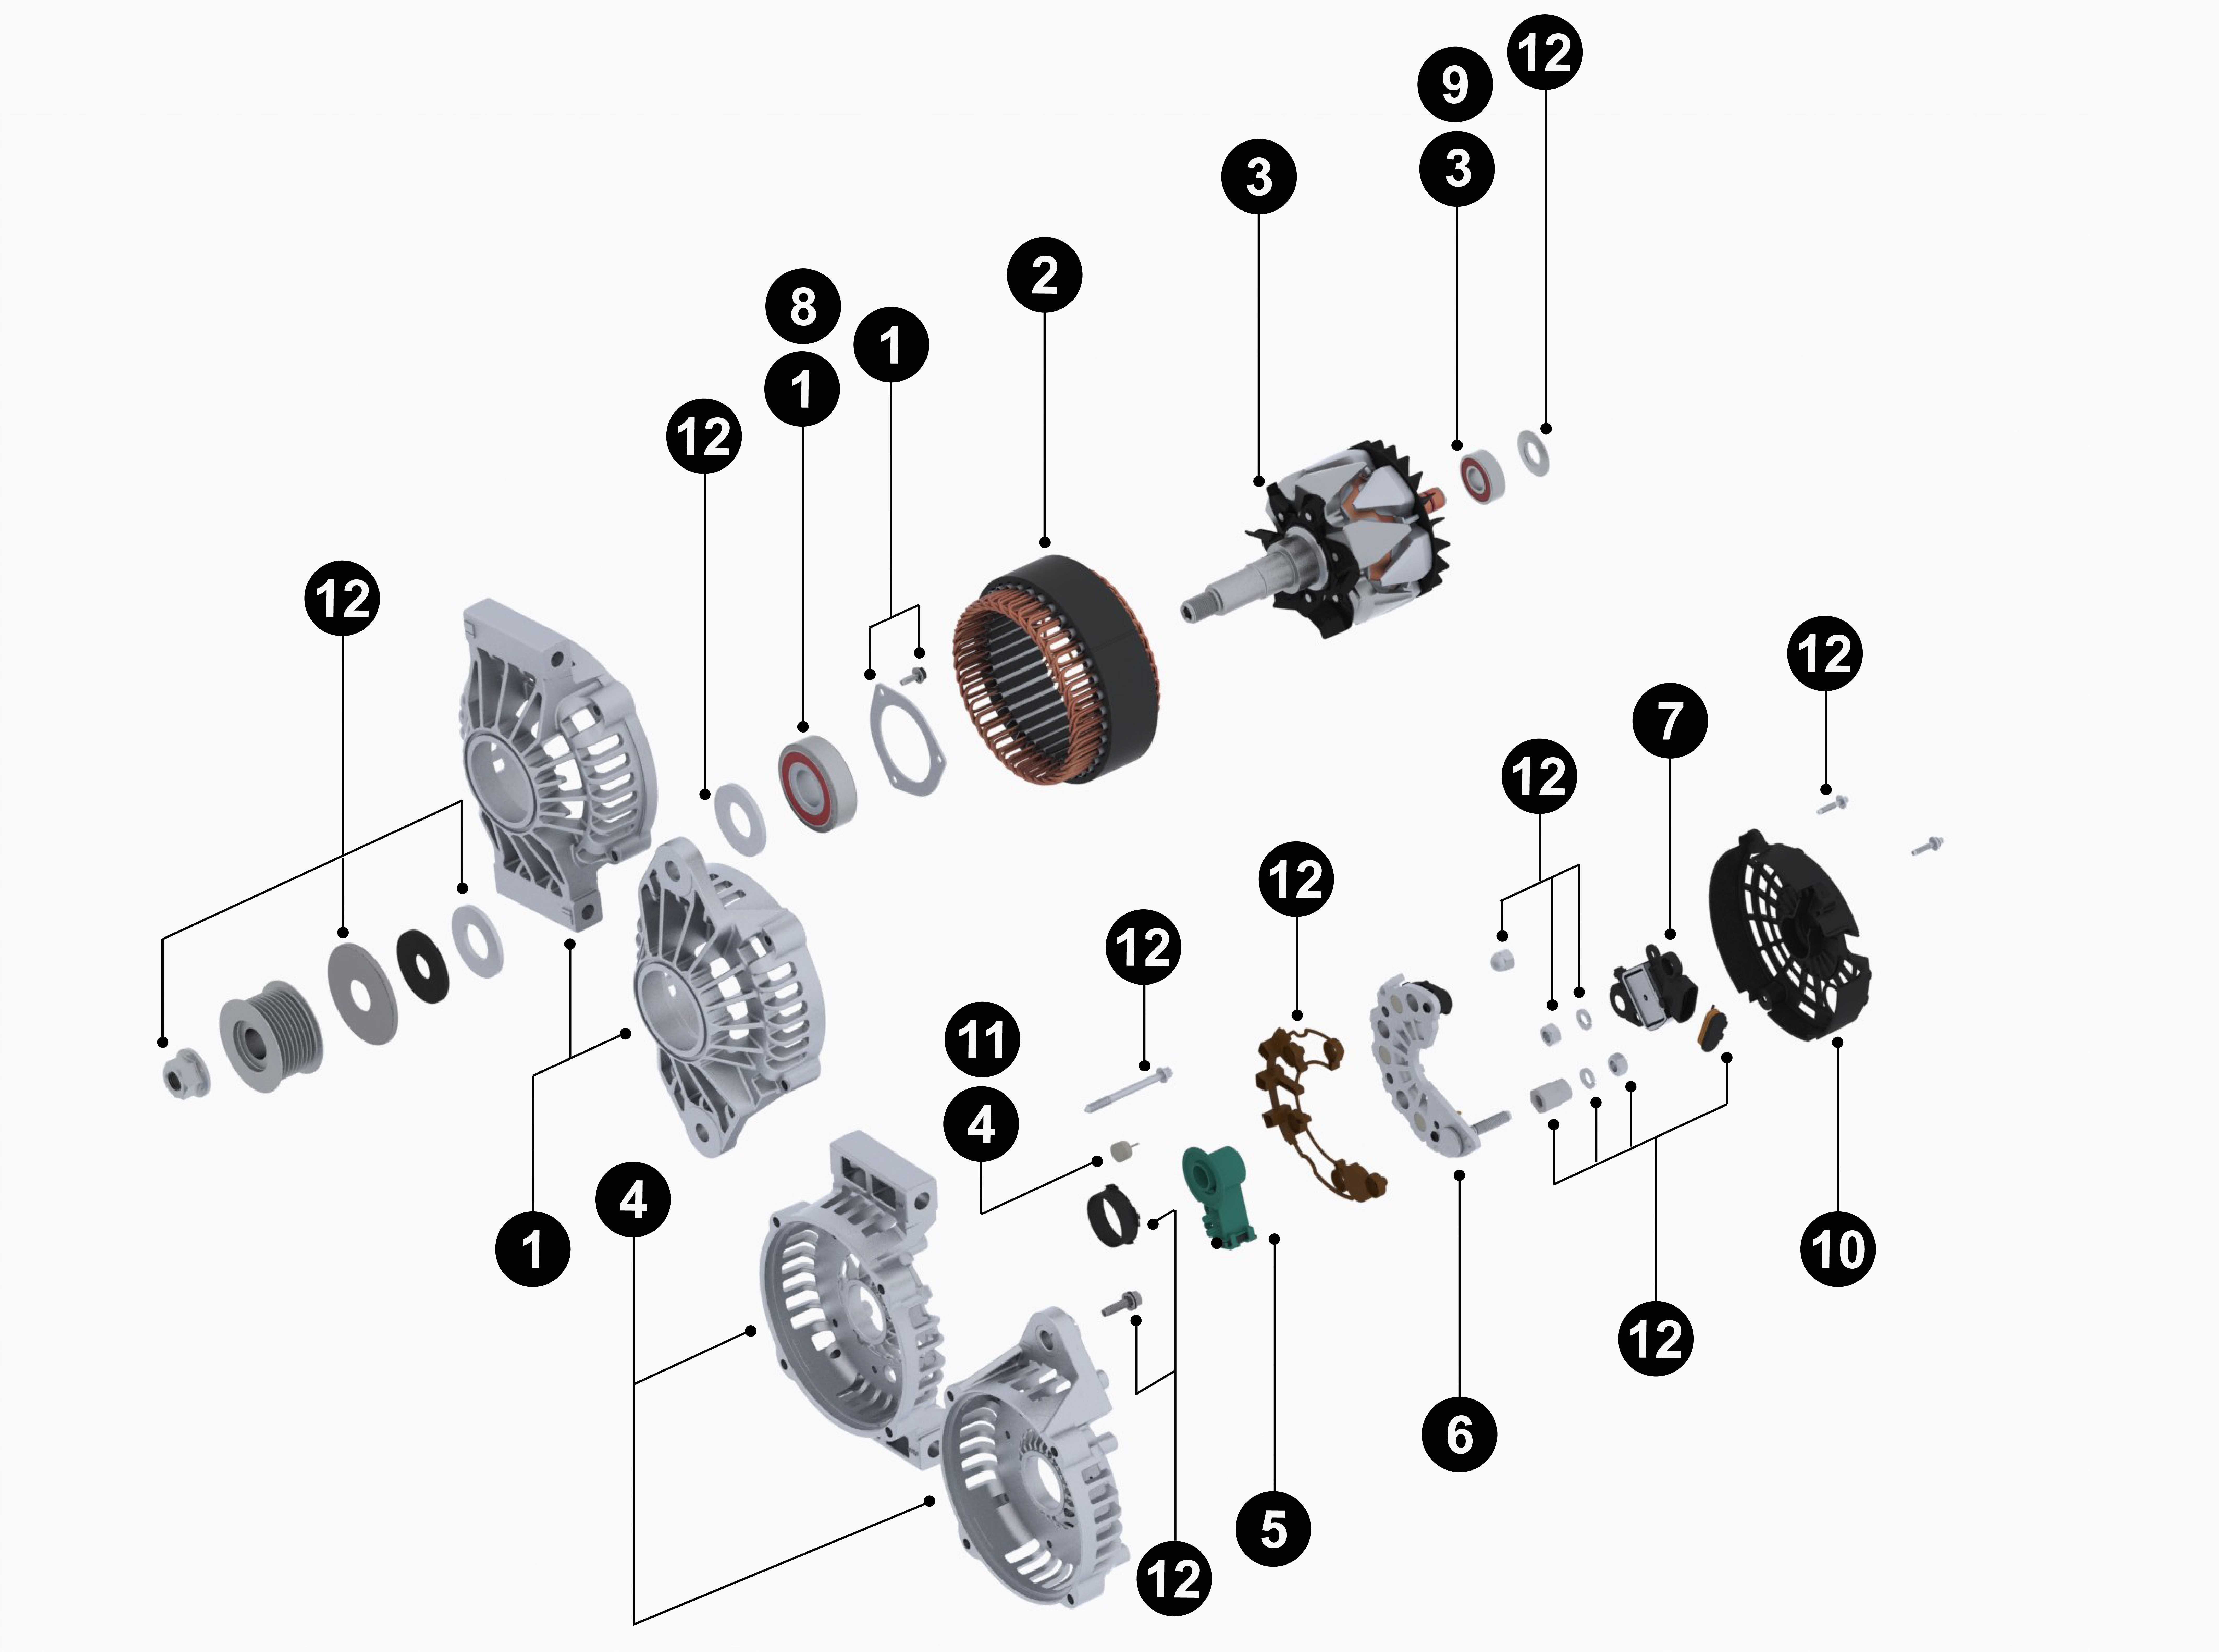 Acdelco 3 Wire Alternator Wiring Diagram